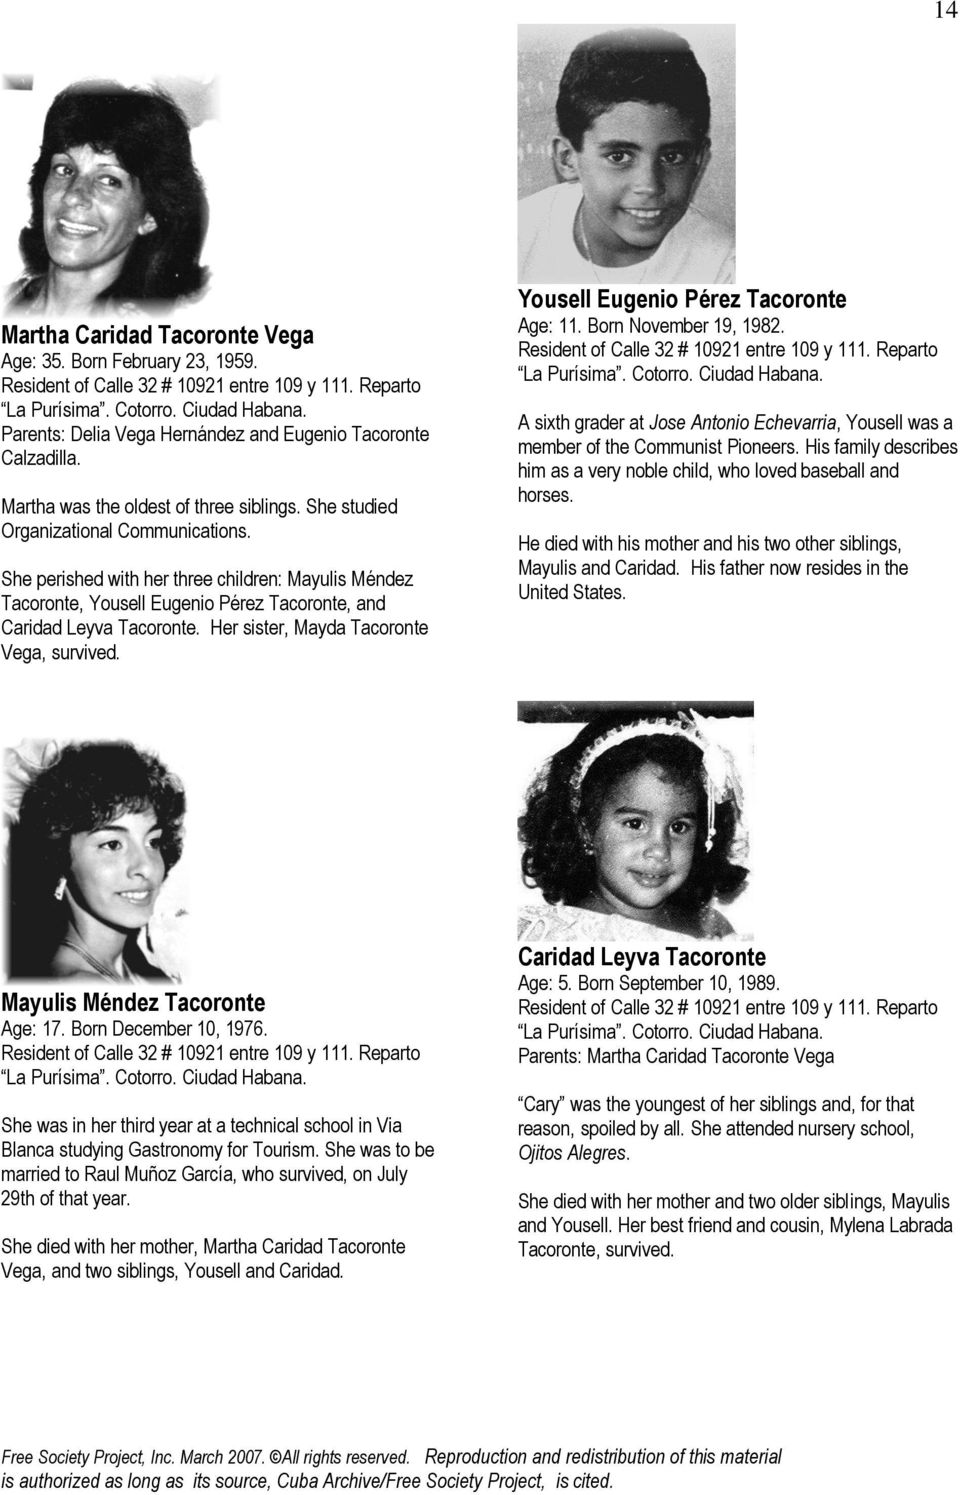 She perished with her three children: Mayulis Méndez Tacoronte, Yousell Eugenio Pérez Tacoronte, and Caridad Leyva Tacoronte. Her sister, Mayda Tacoronte Vega, survived.